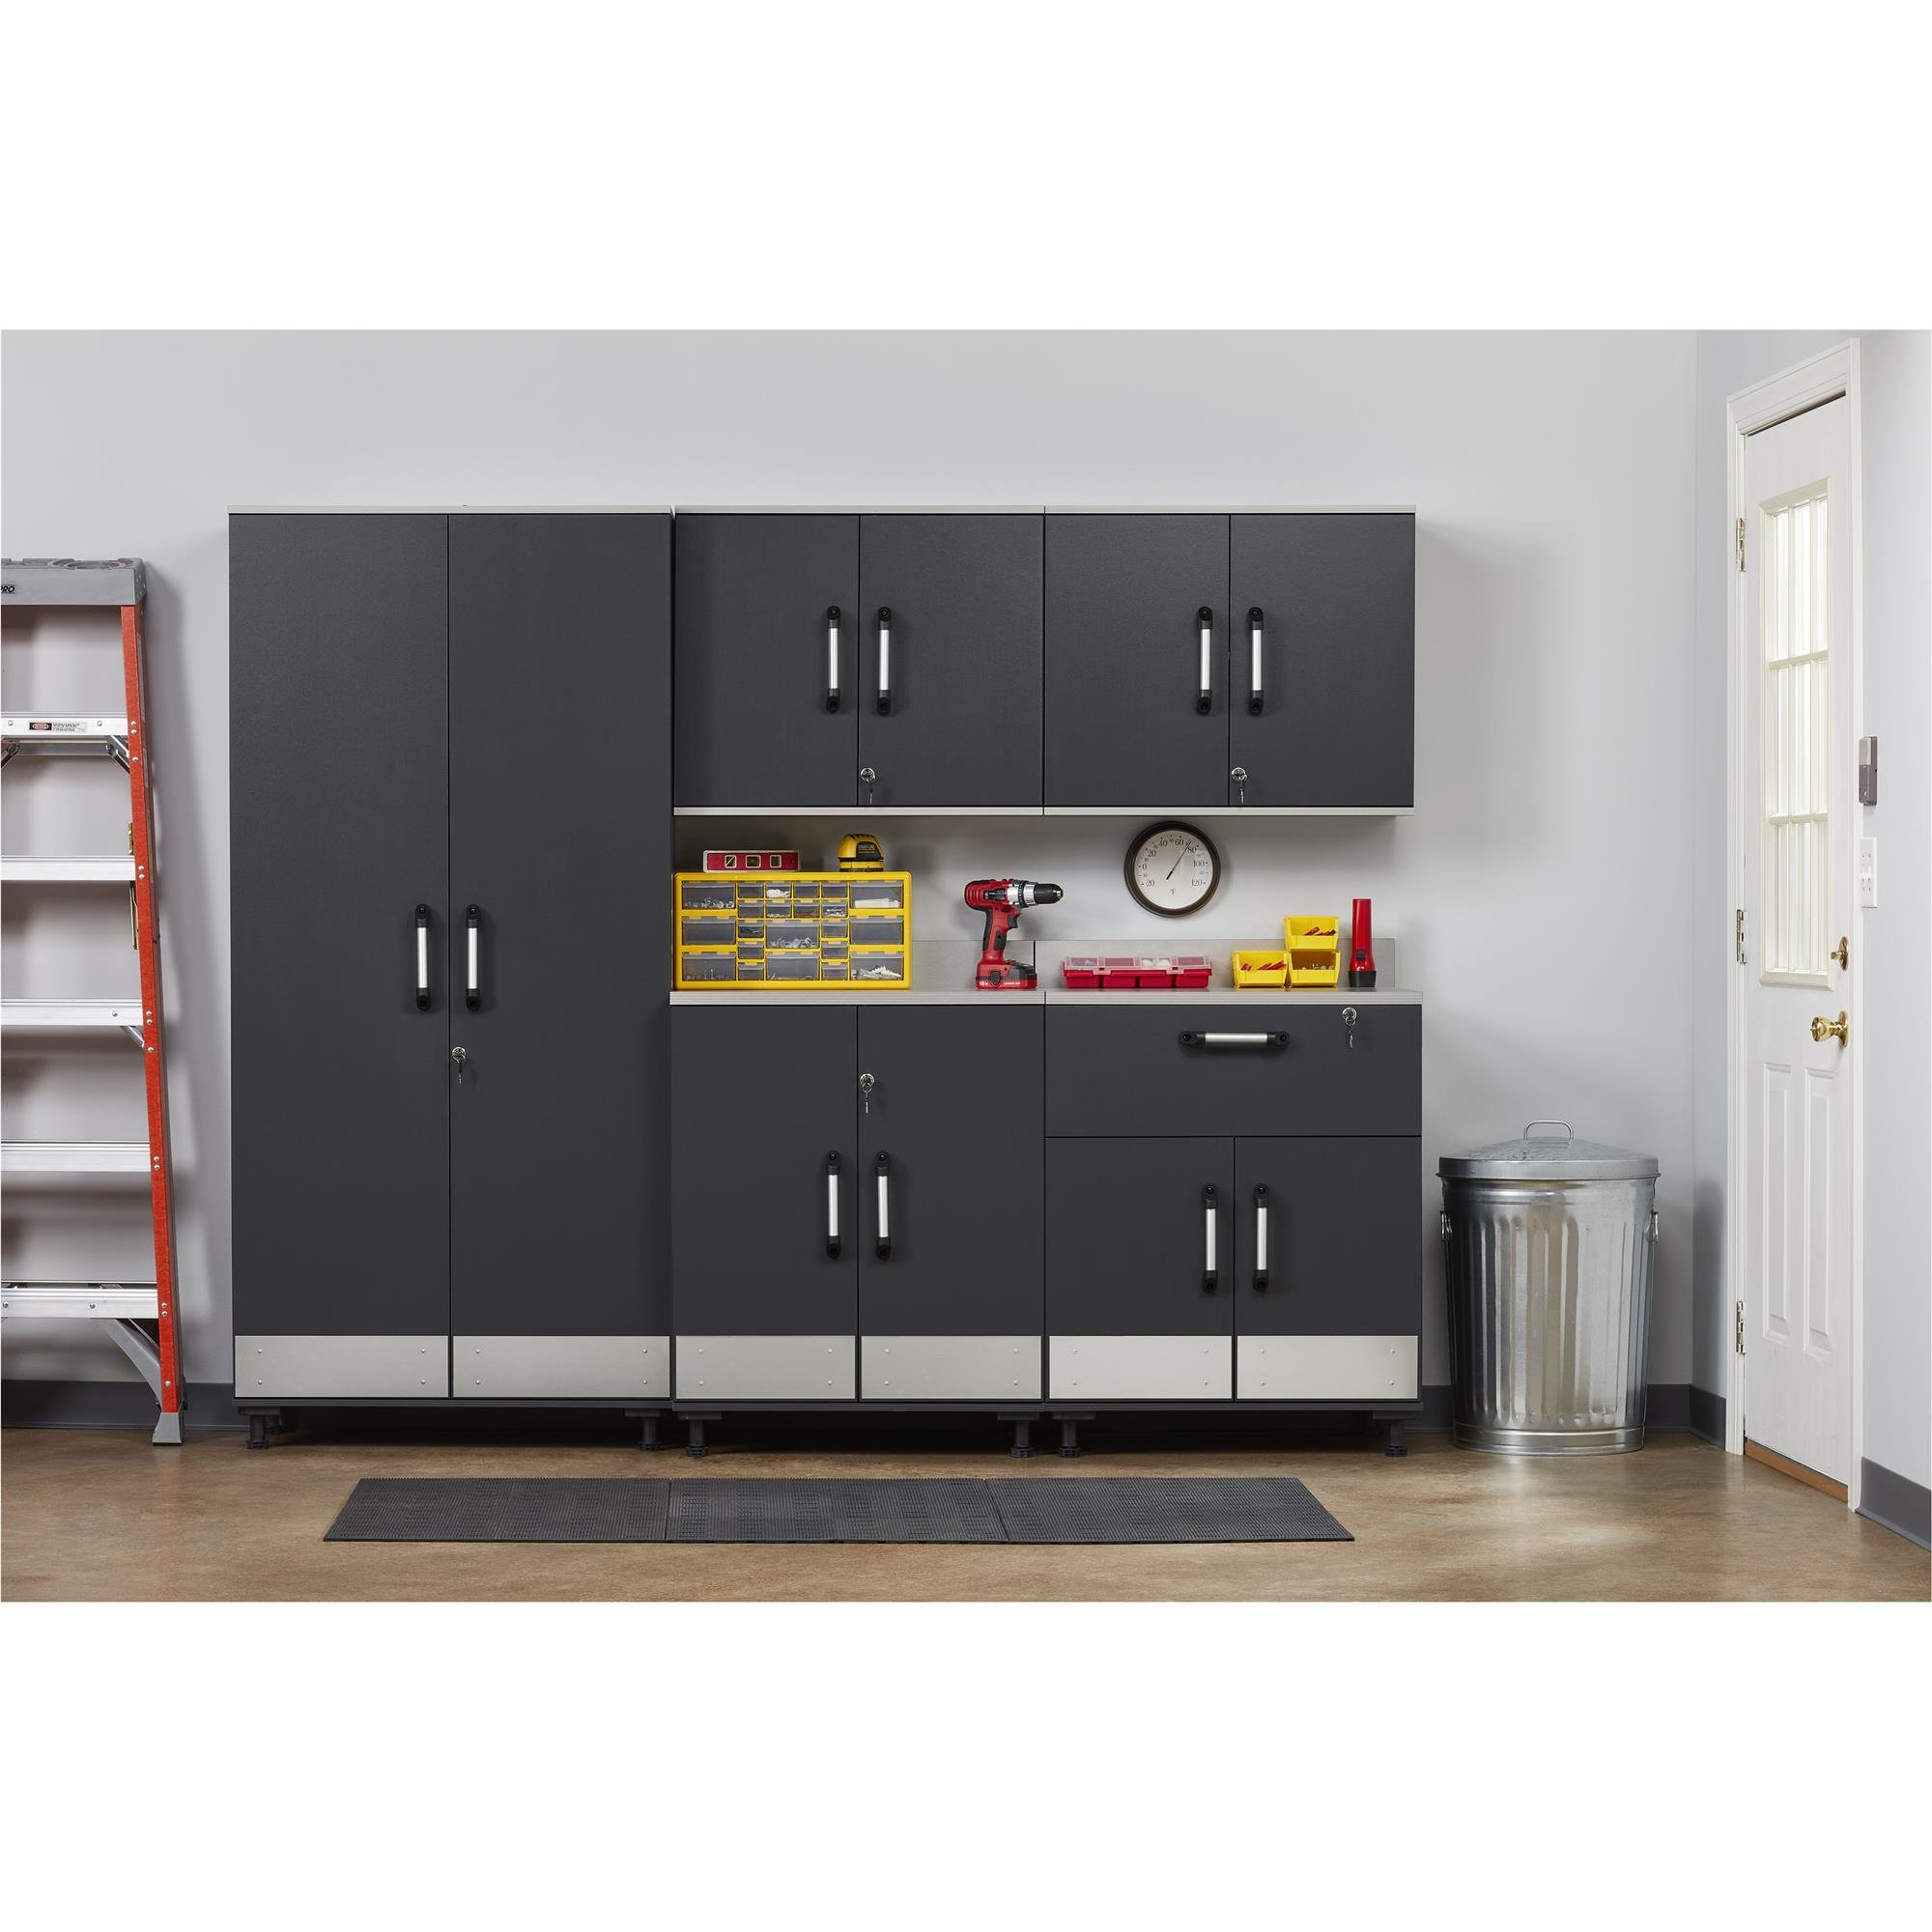 Ameriwood Home Boss -Base Cabinet 2 Door, Charcoal Gray by Ameriwood Home (Image #6)